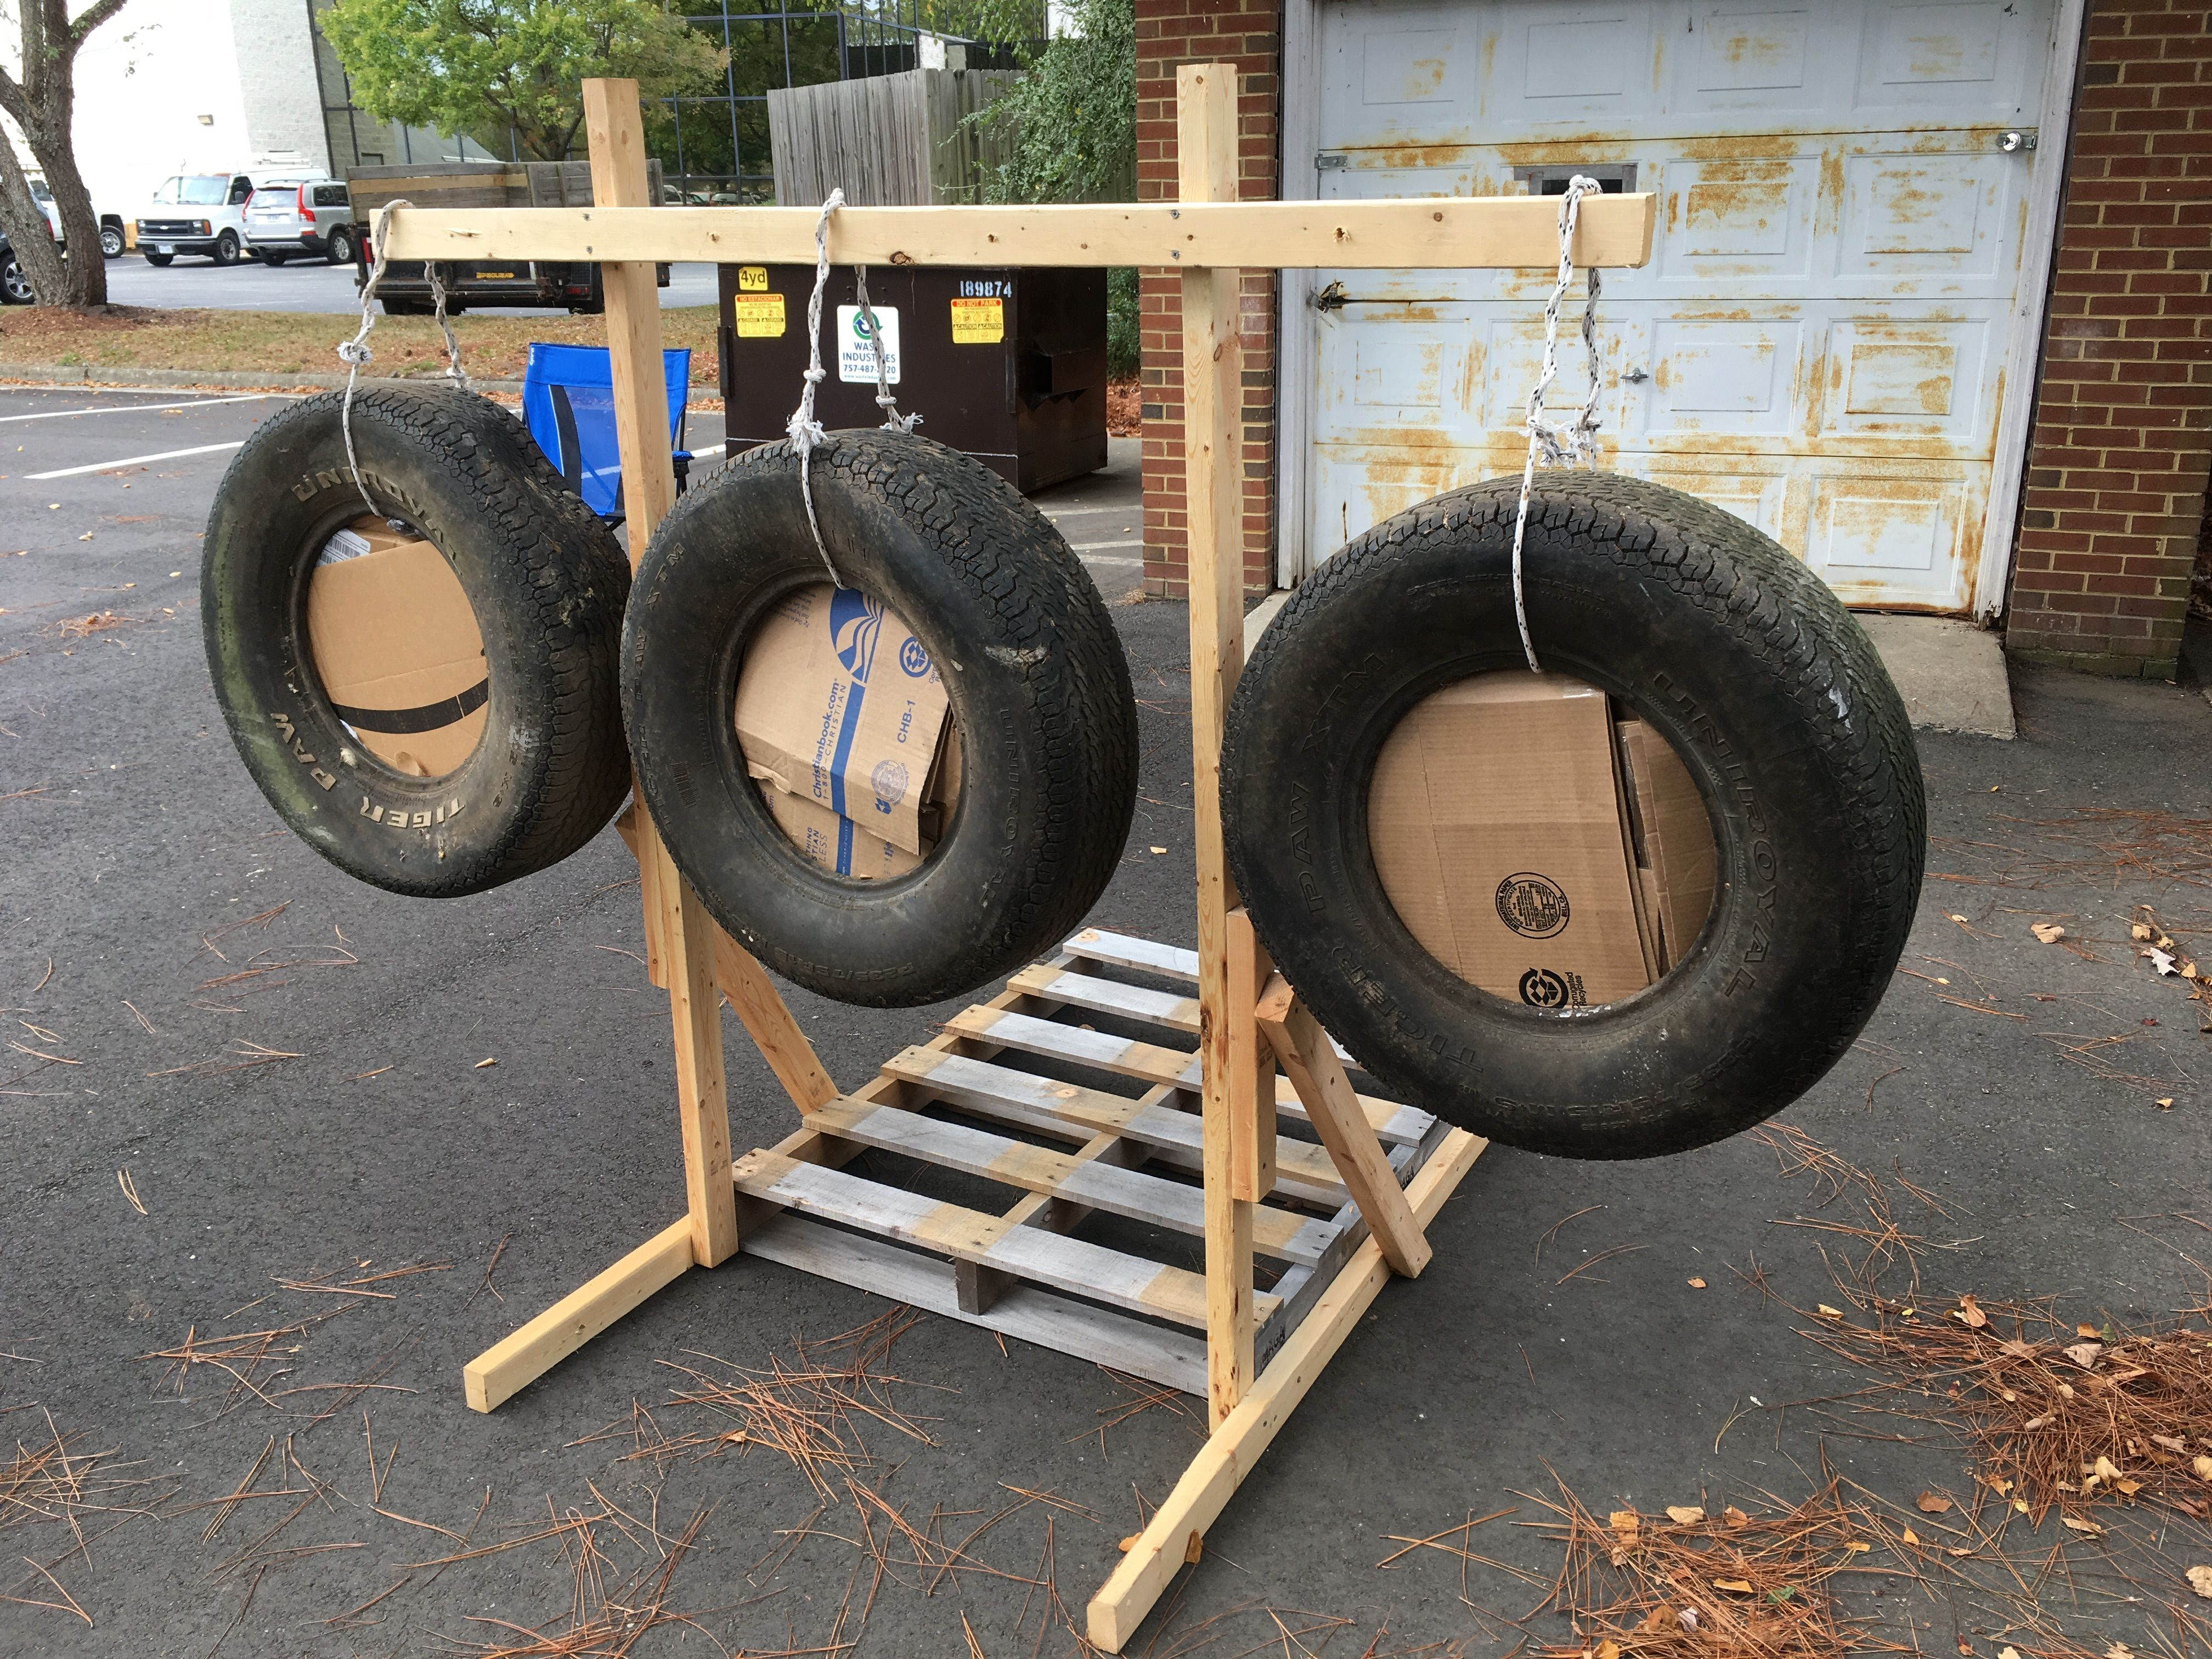 Diy Archery Target Using Tires A Pallet And 2x4 S Tires Diy